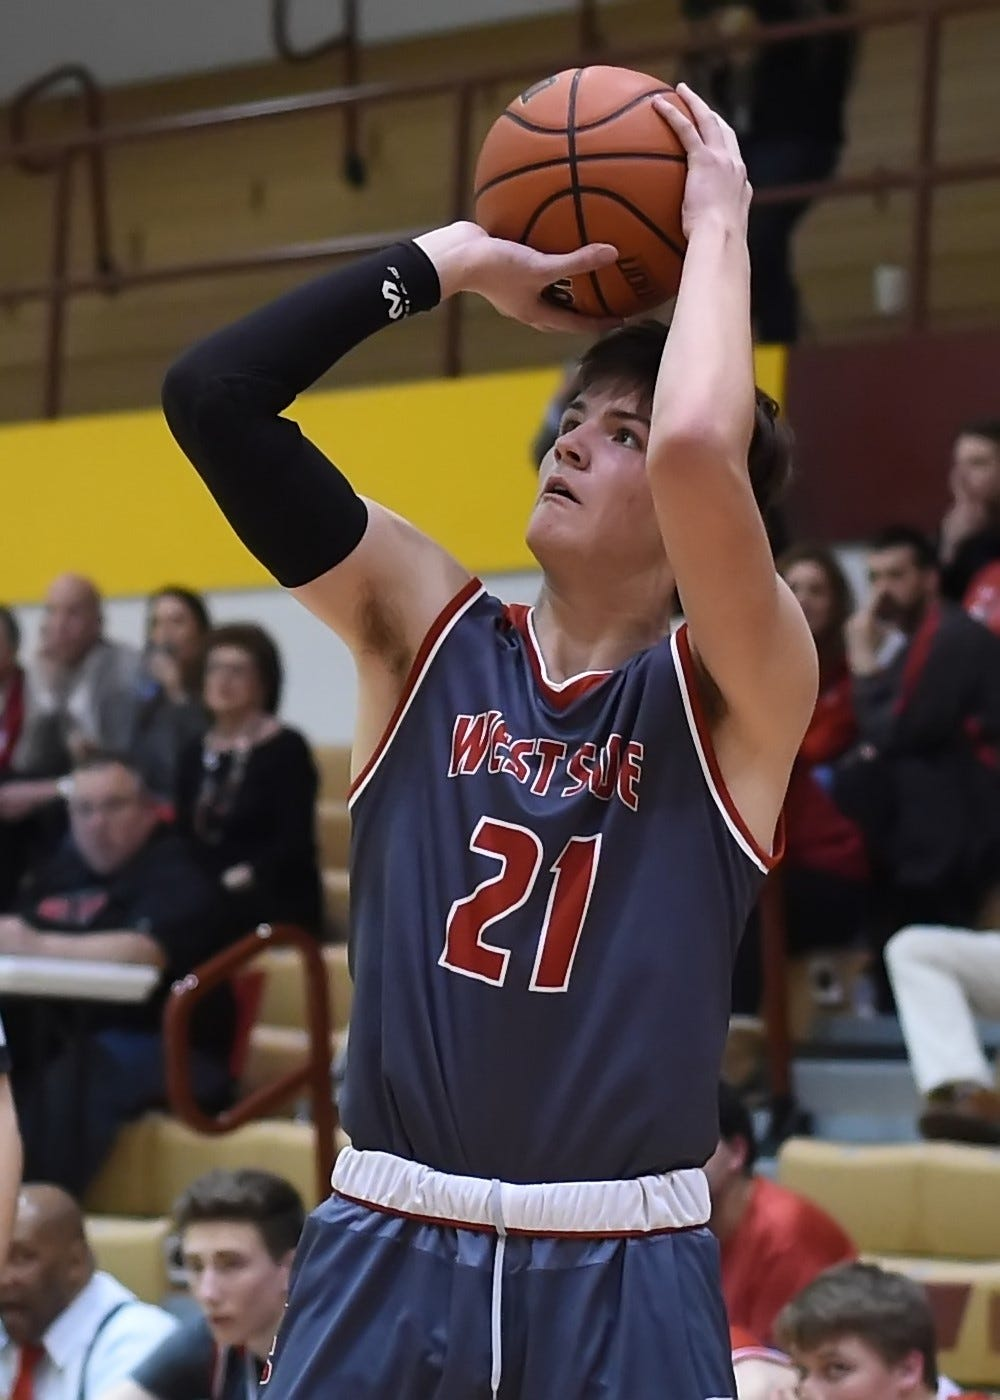 Harrison Truitt scored nine of his 16 points in the fourth quarter to lead a West Lafayette comeback.